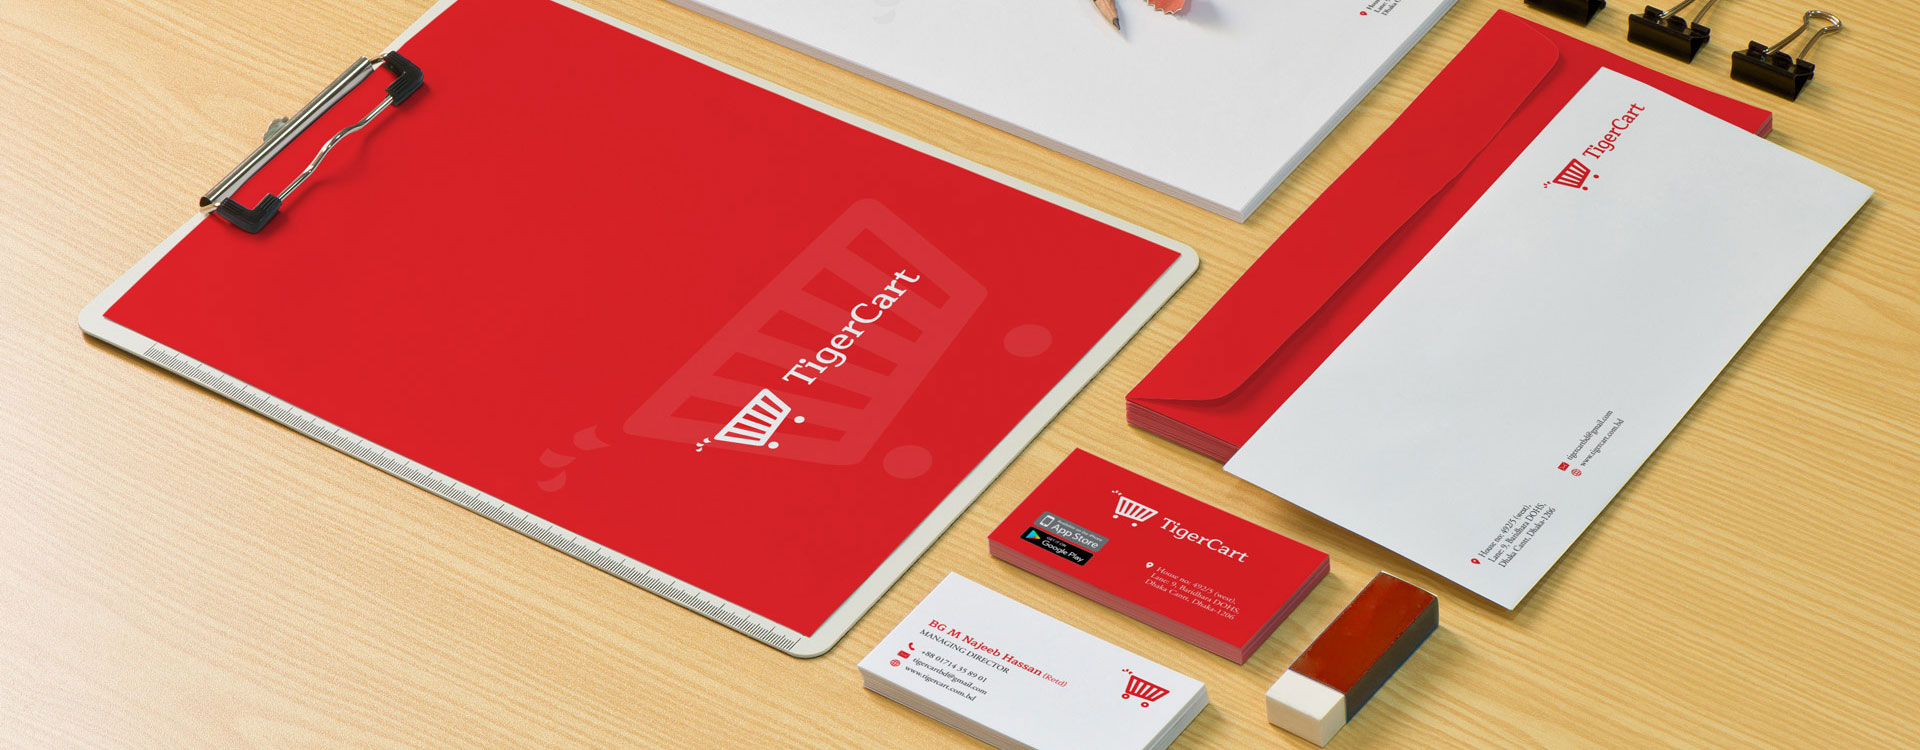 Stationery Design for TigerCart, an ecommerce shopping website